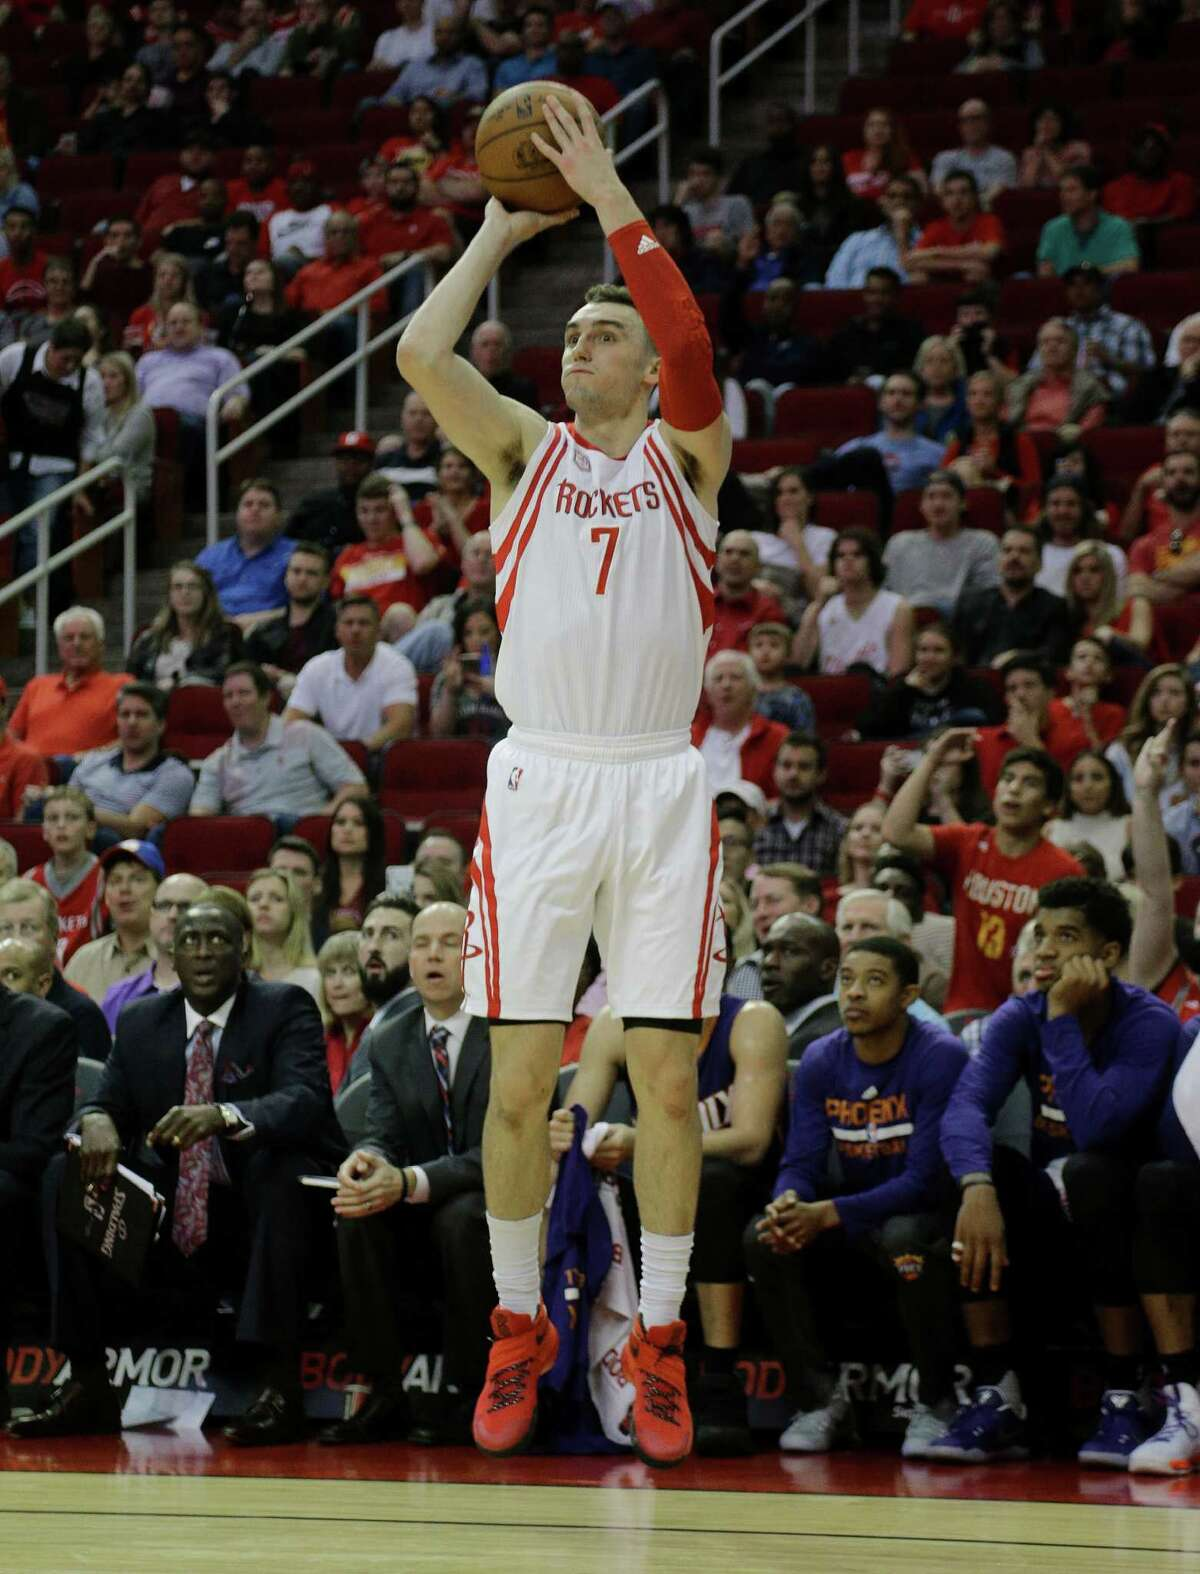 Houston Rockets forward Sam Dekker (7) shoots a three-point shot against the Phoenix Suns in the first half of an NBA basketball game on Monday, Dec. 26, 2016 in Houston. (AP Photo/Bob Levey)